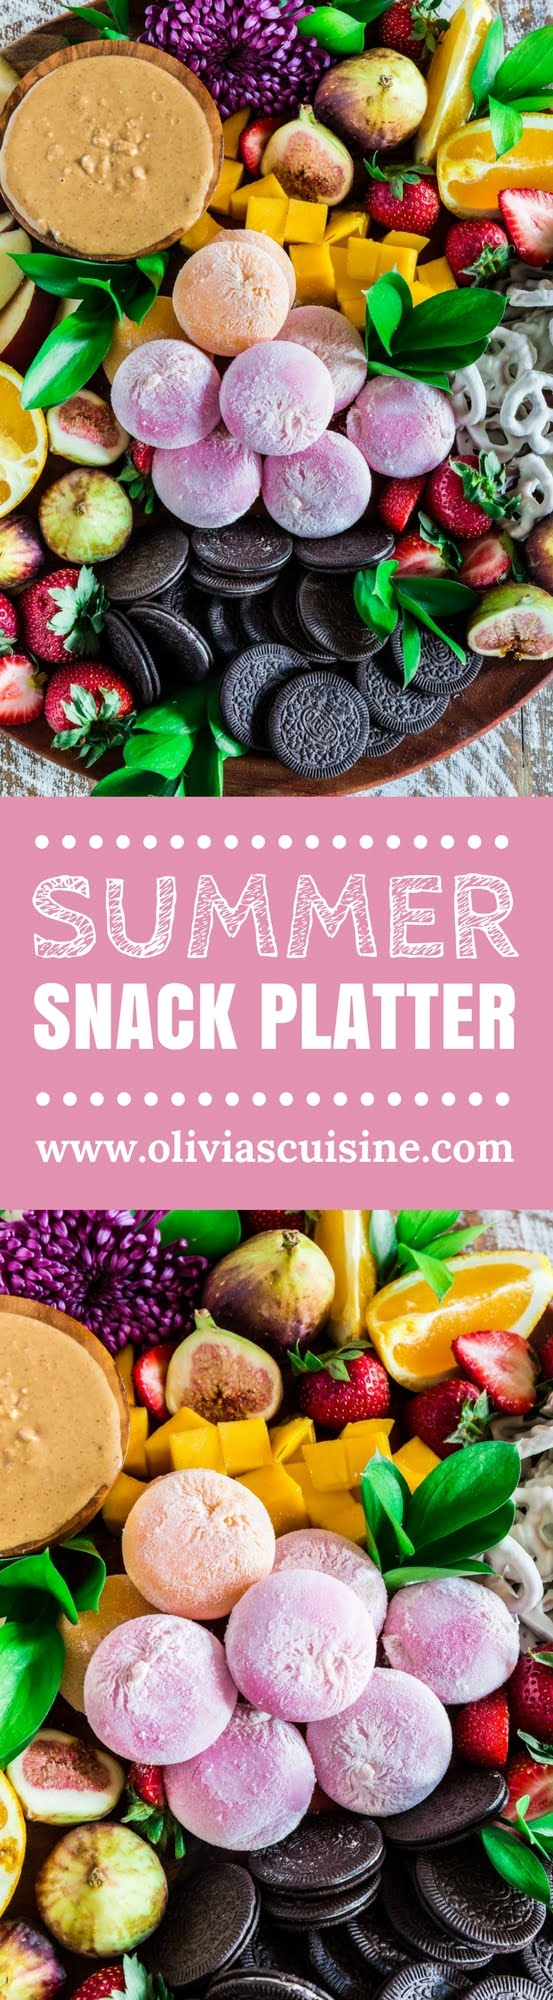 Summer Snack Platter | www.oliviascuisine.com | Seasonal summer fruit, cookies, pretzels and mochi ice cream makes this the summer snack platter of your dreams! (Recipe and food photography by @oliviascuisine.)